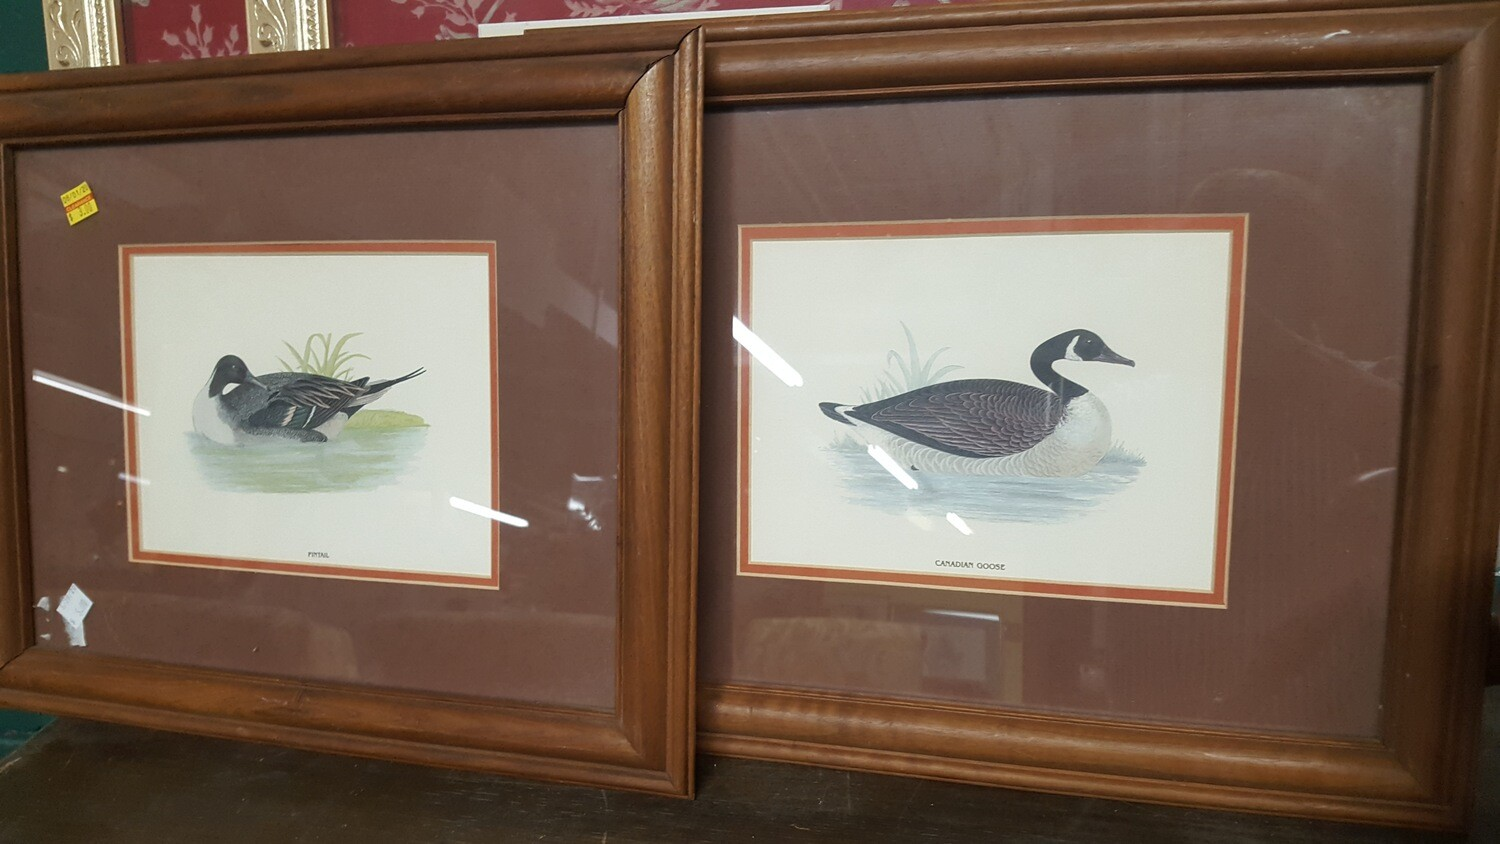 Framed prints, waterfowl (CL)